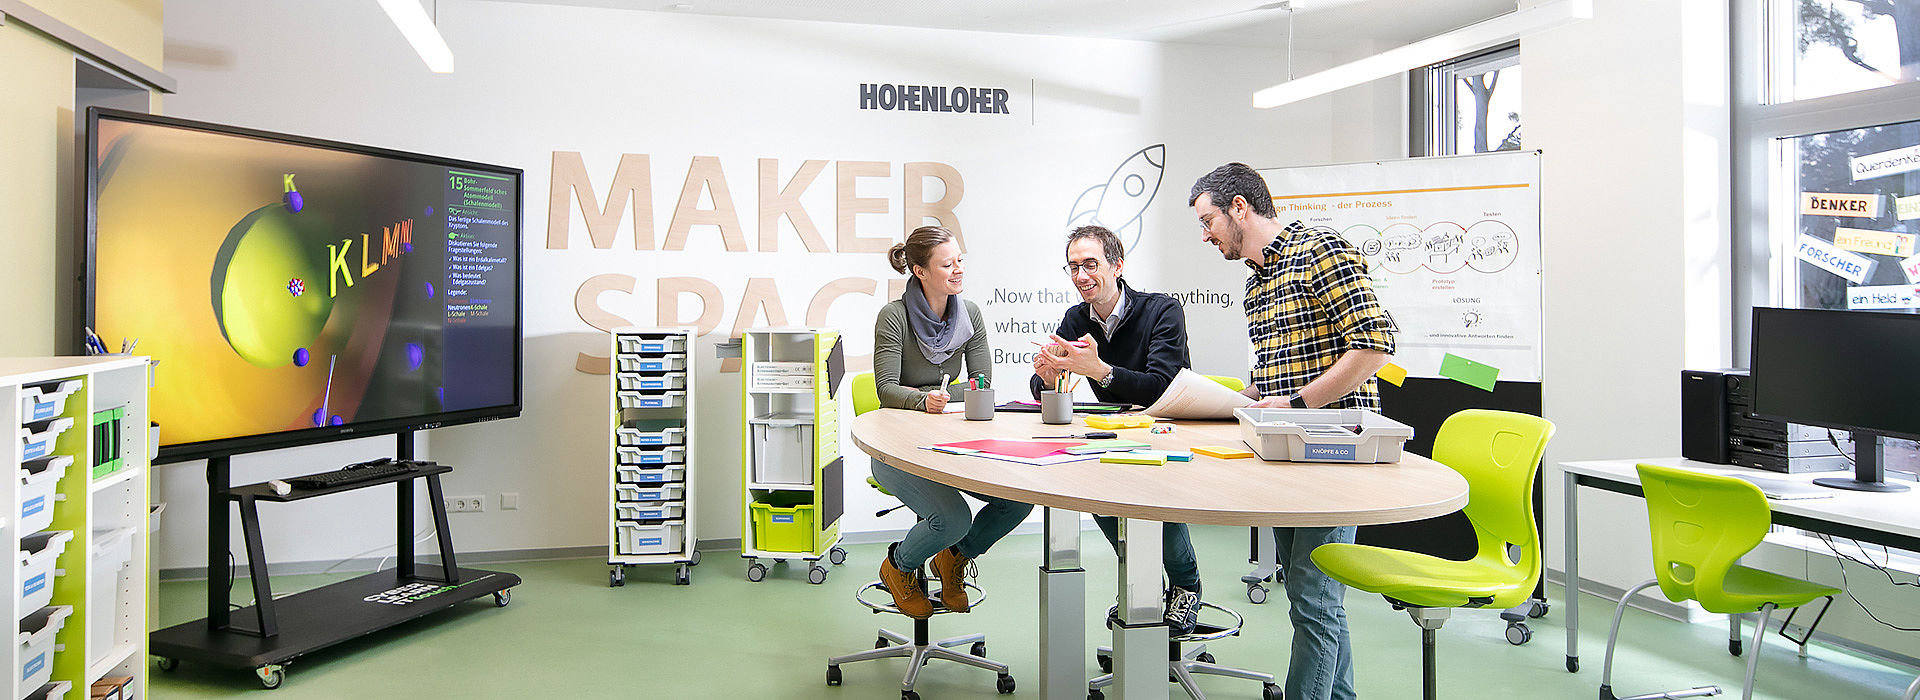 Image: Design Thinking at Makerspace